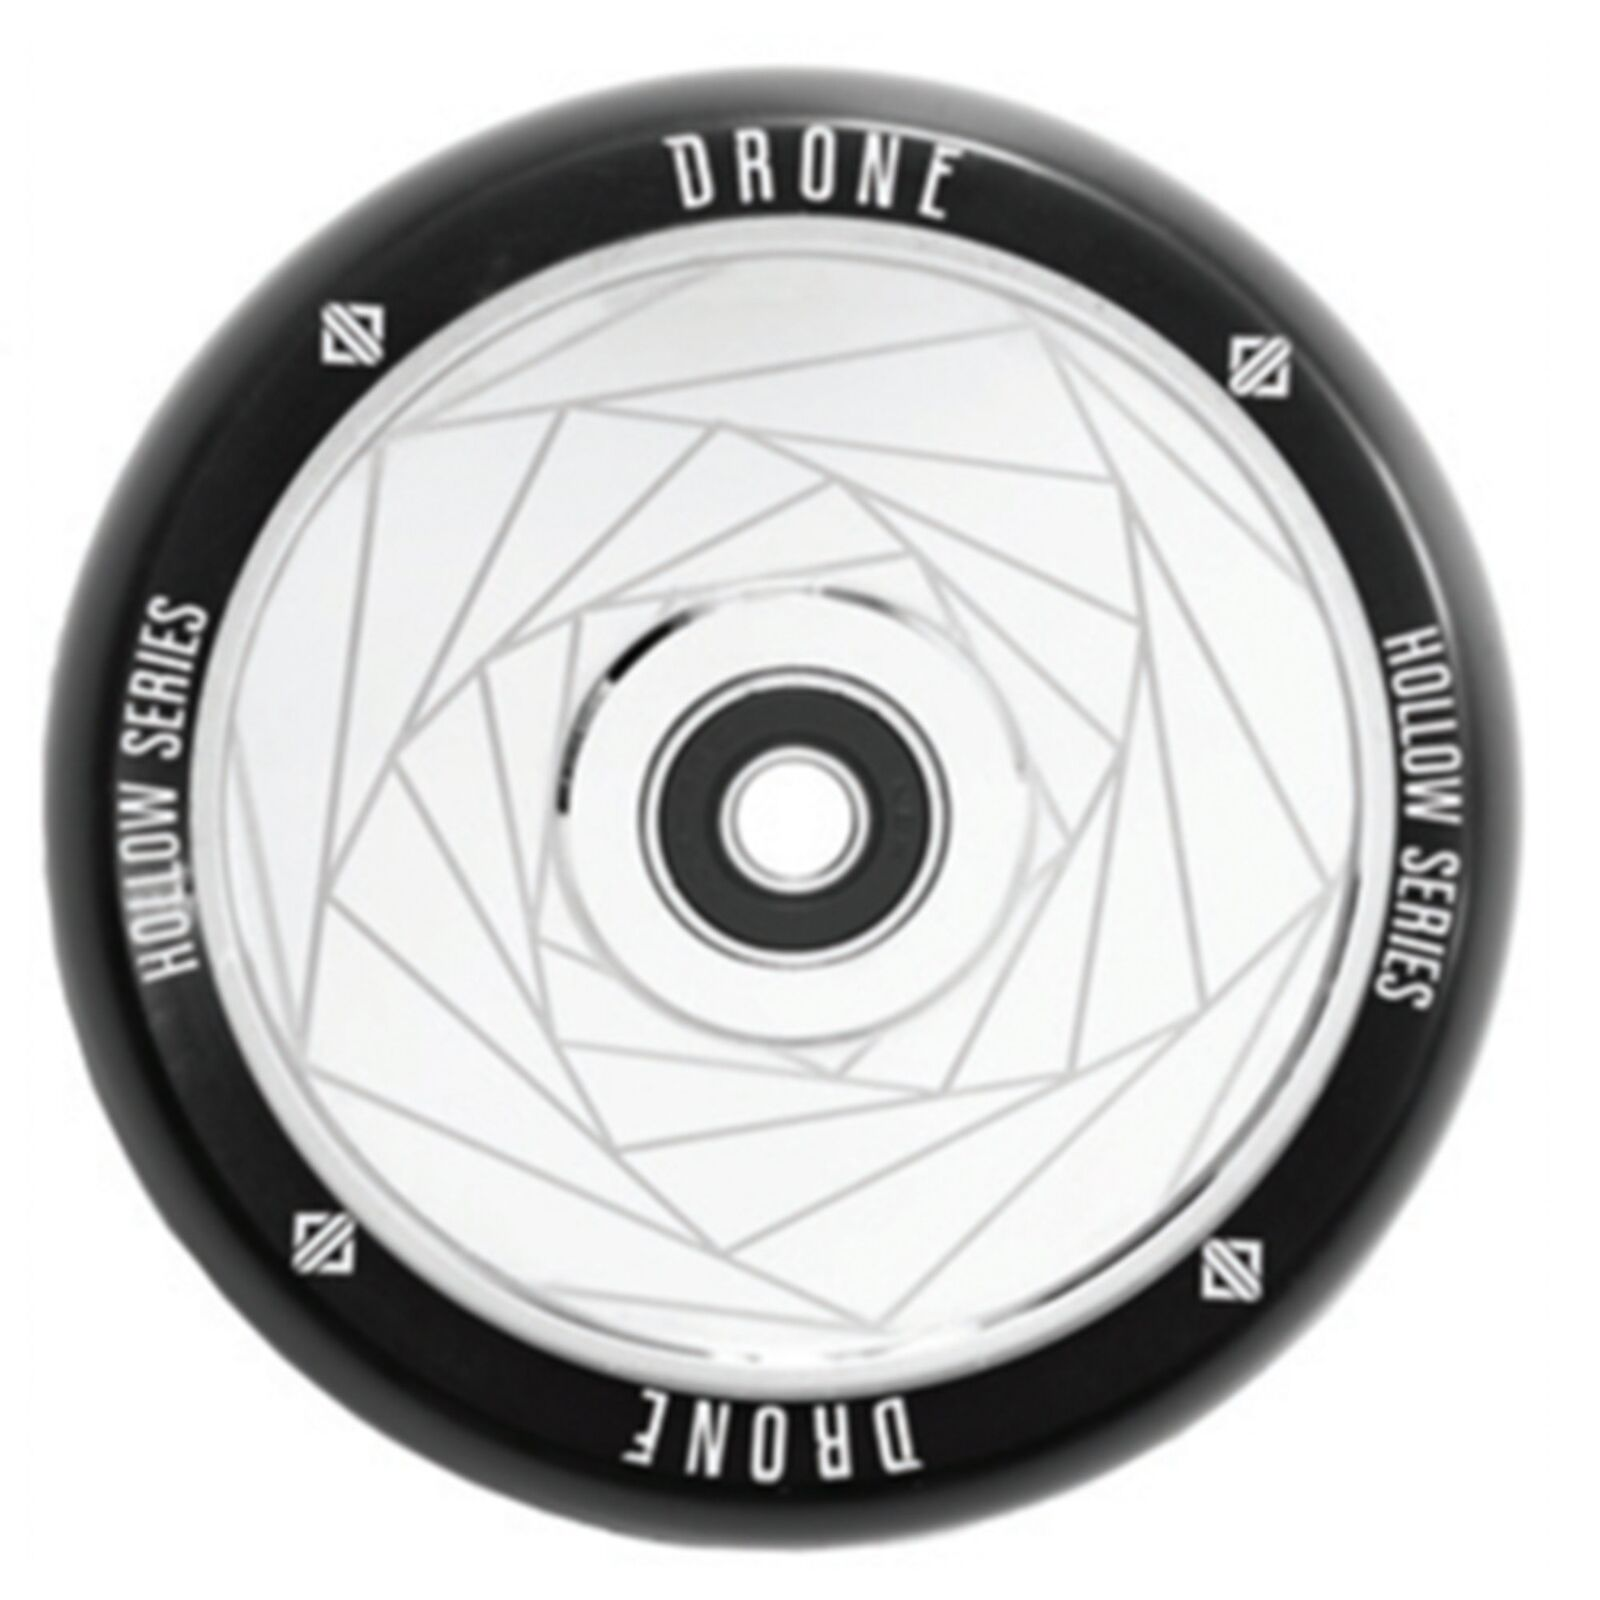 Drone Scooters Featherlight Hollow Core Scooter Wheel, Spiral